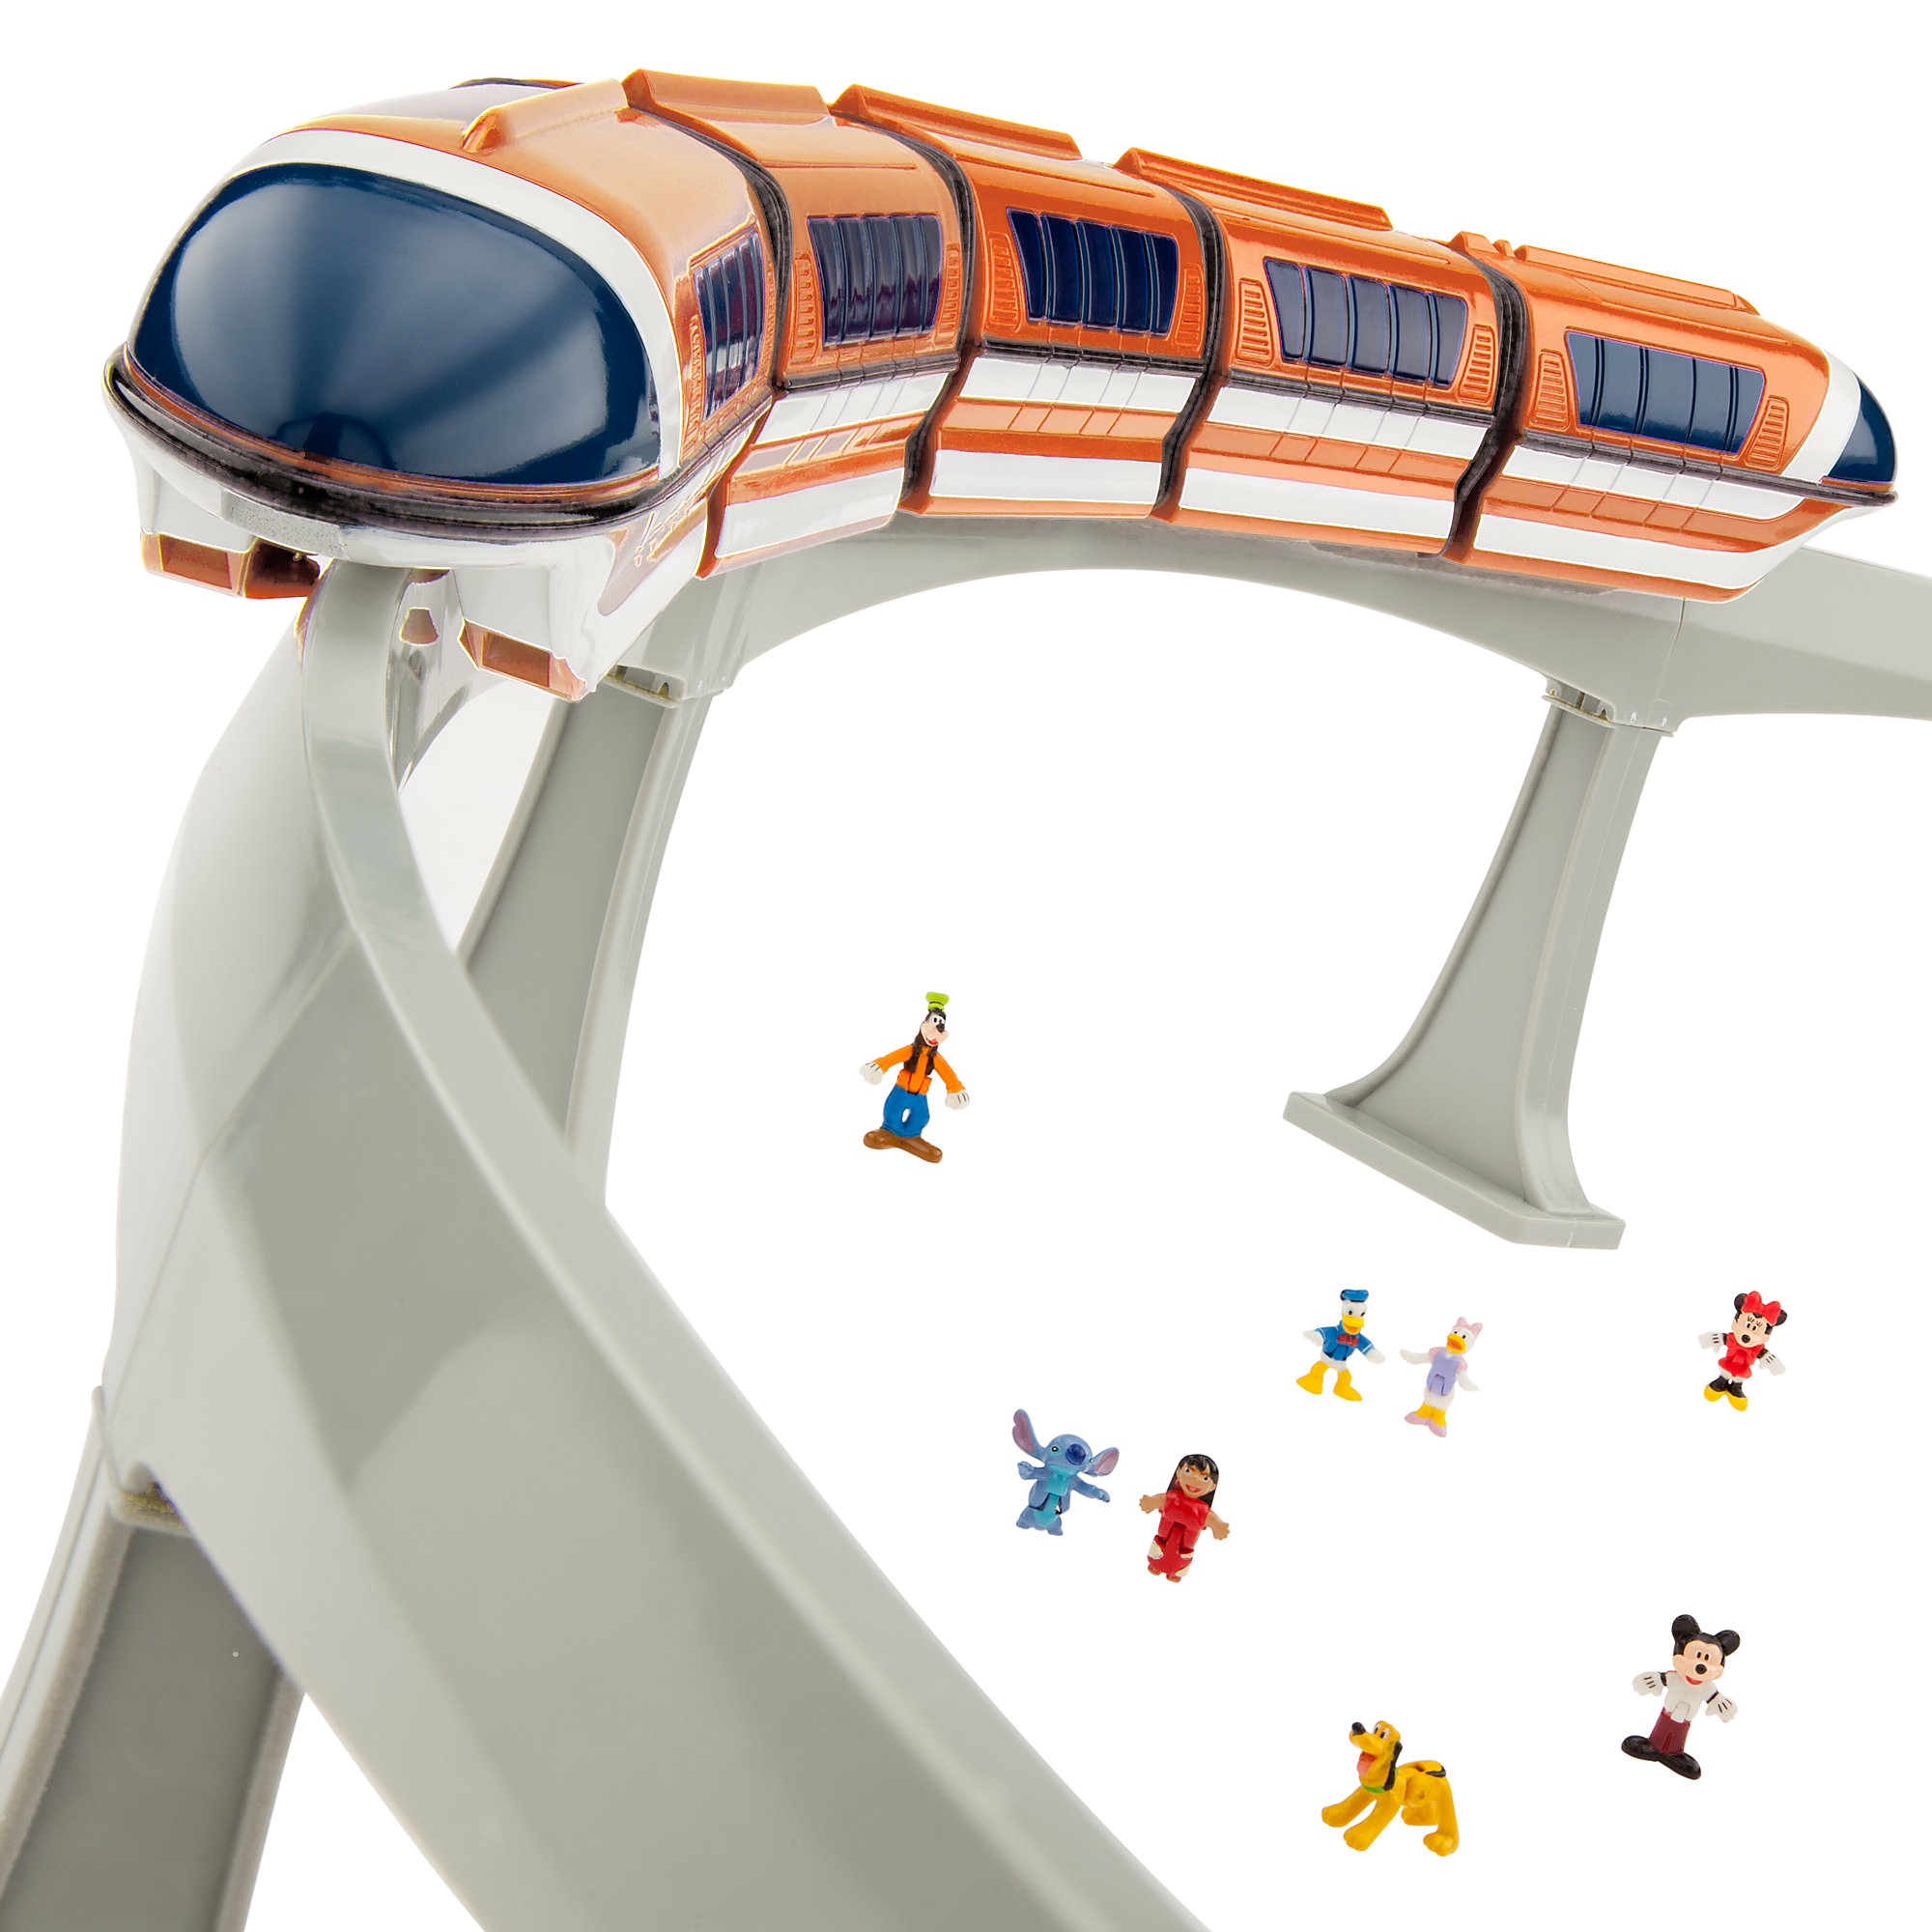 Monorail Train Track Playset (Orange) Walt Disney World Spaceship Earth Figure Light & Sound Toy Vehicle... by